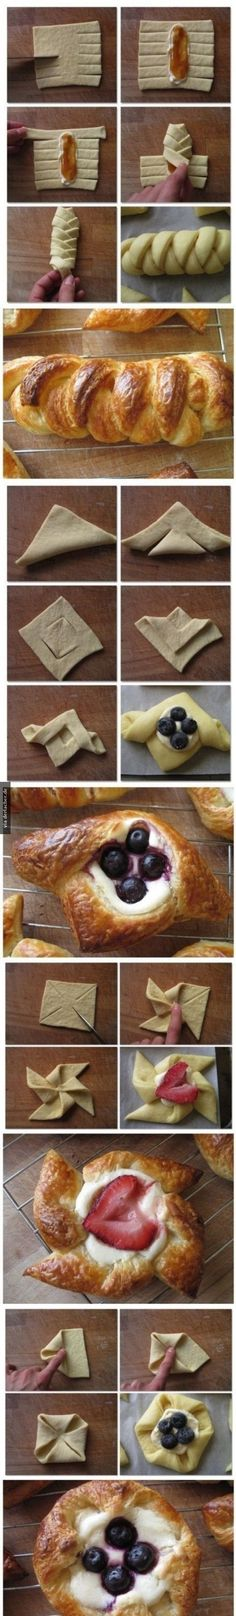 pretty puff pastry techniques. for the filling cream cheese or greek yogurt can be used